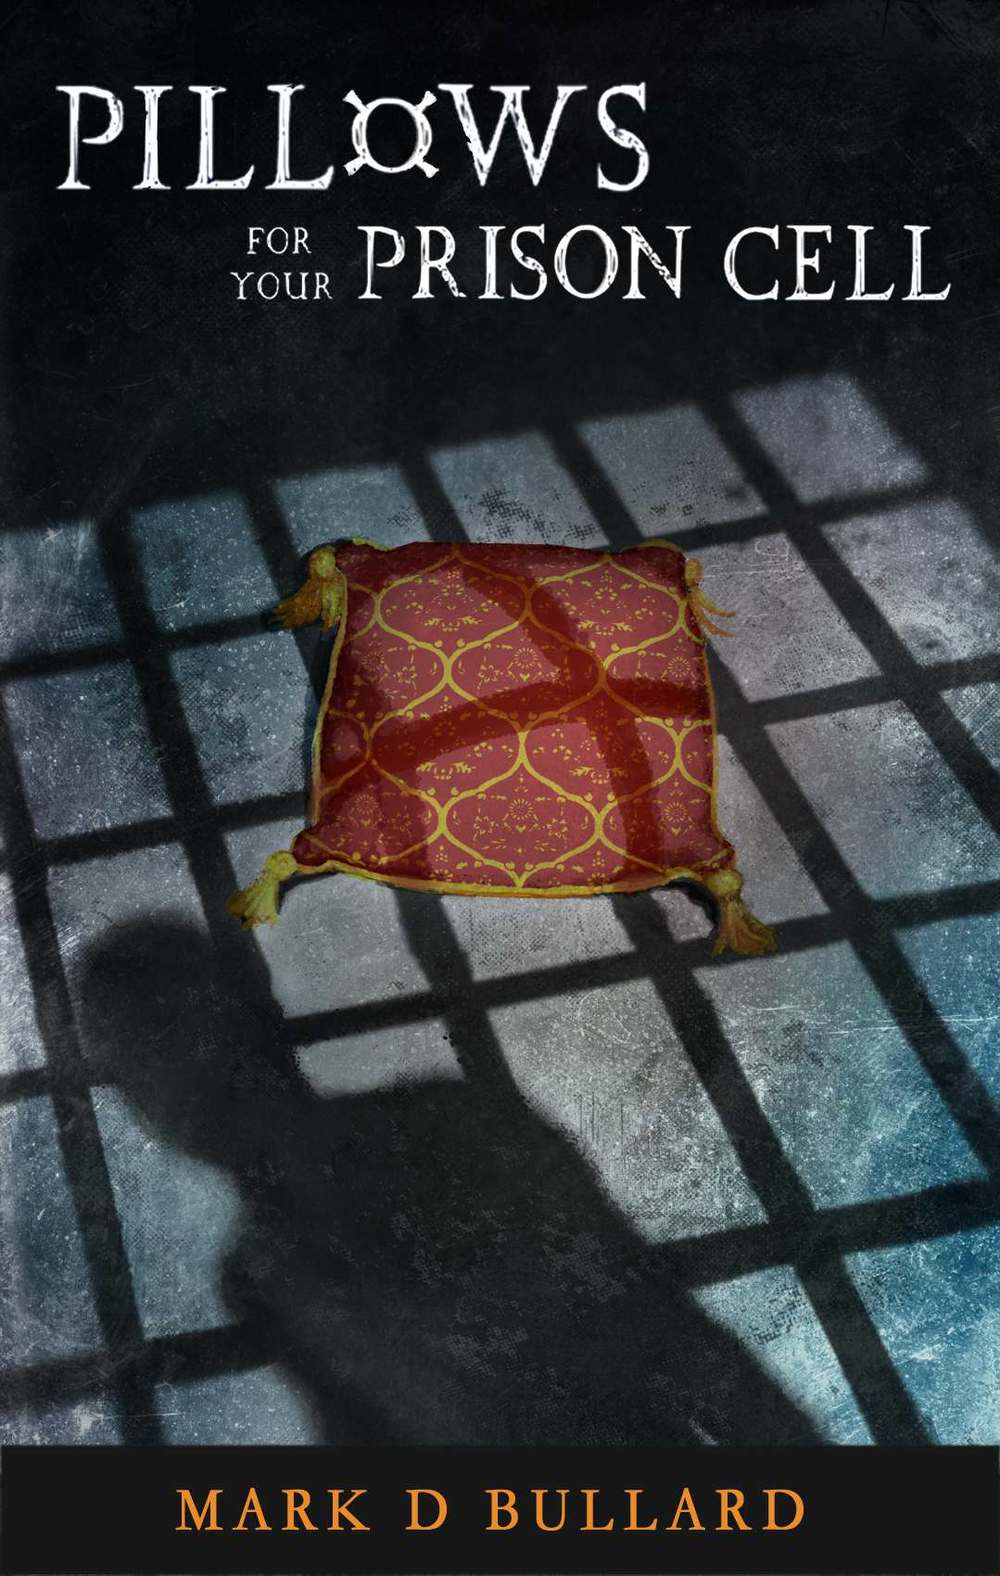 PillowsForYourPrisonCellCover.jpg